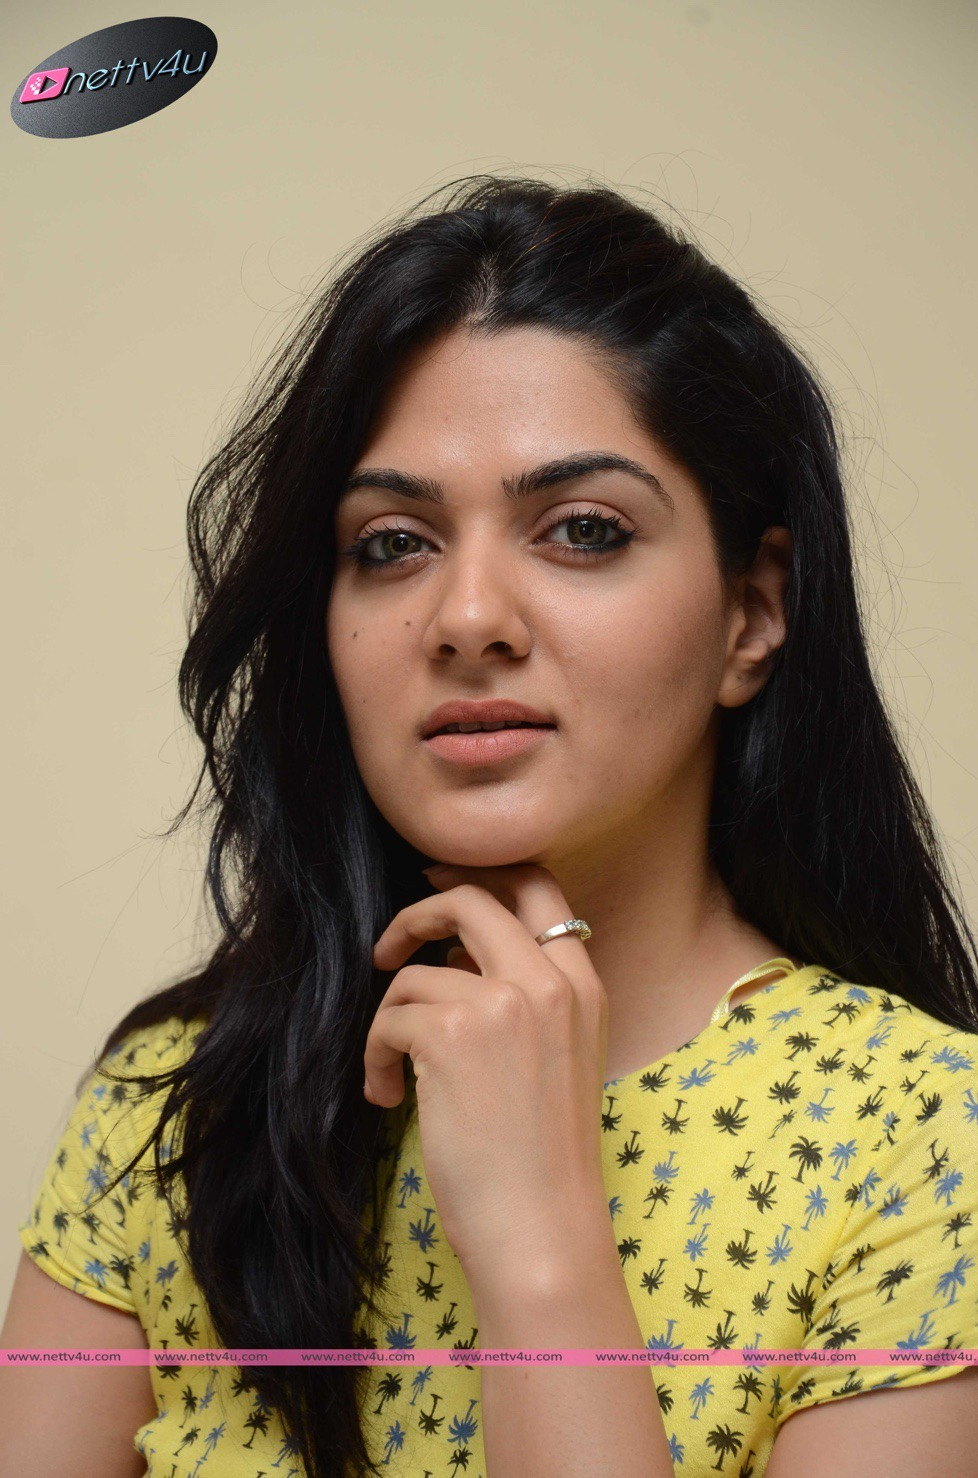 Hot Pictures of Sakshi Chaudhary